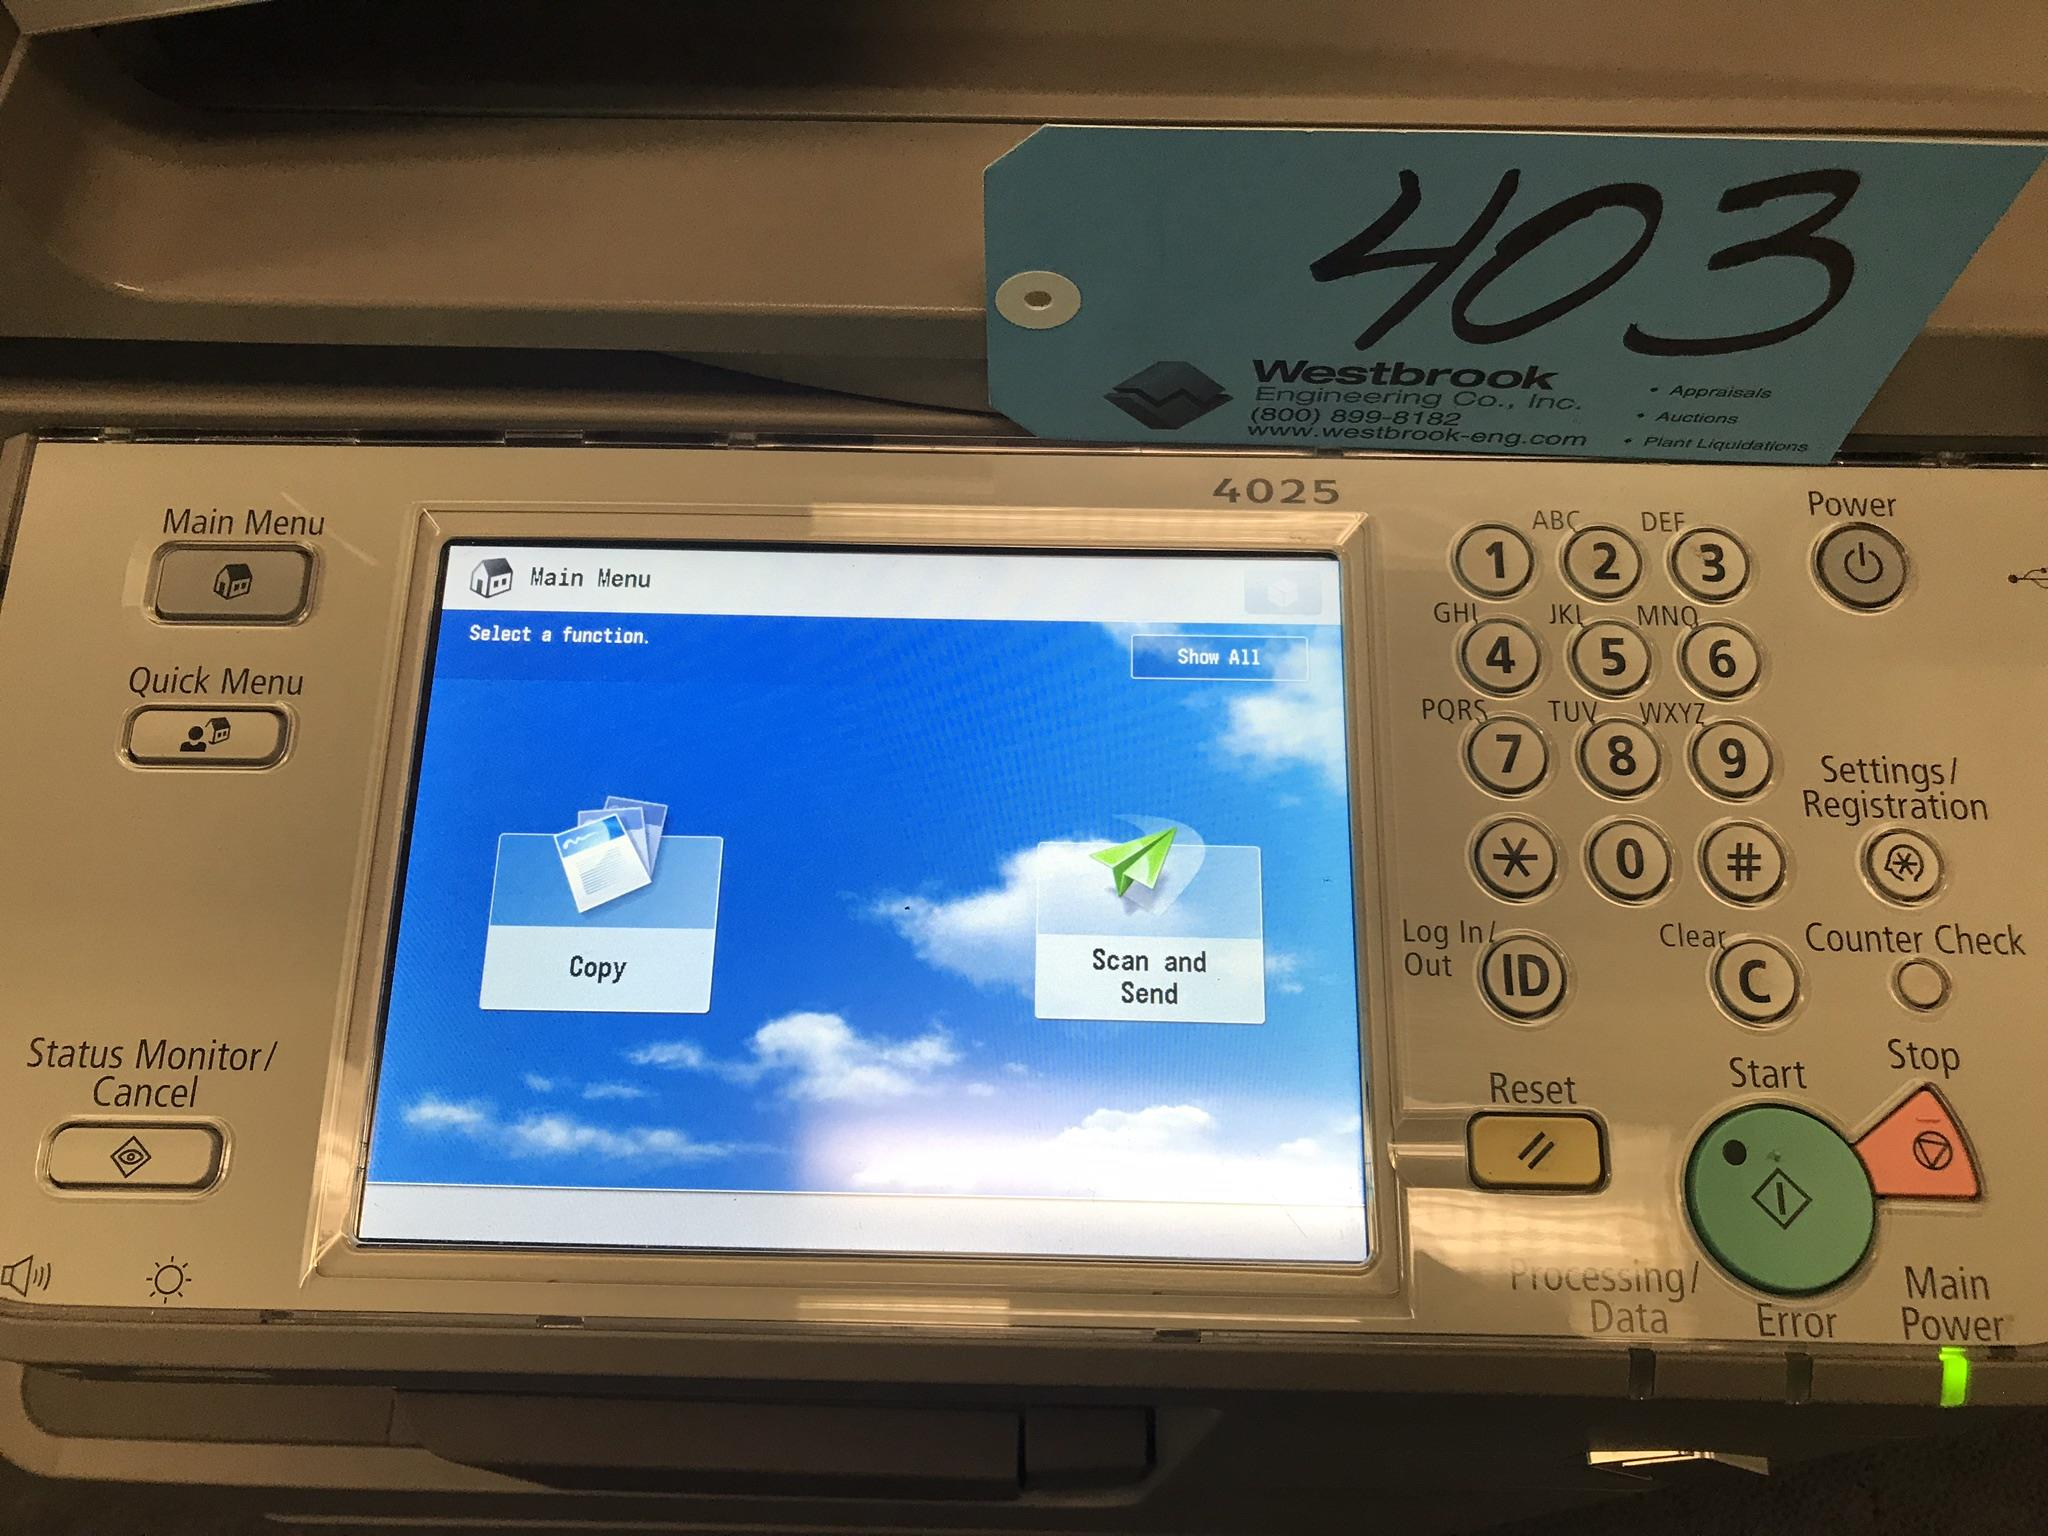 Canon 4025 Image Runner Multifunction Imaging System w/ Color Copy, B & W Print, Scan, Send, Store - Image 4 of 4